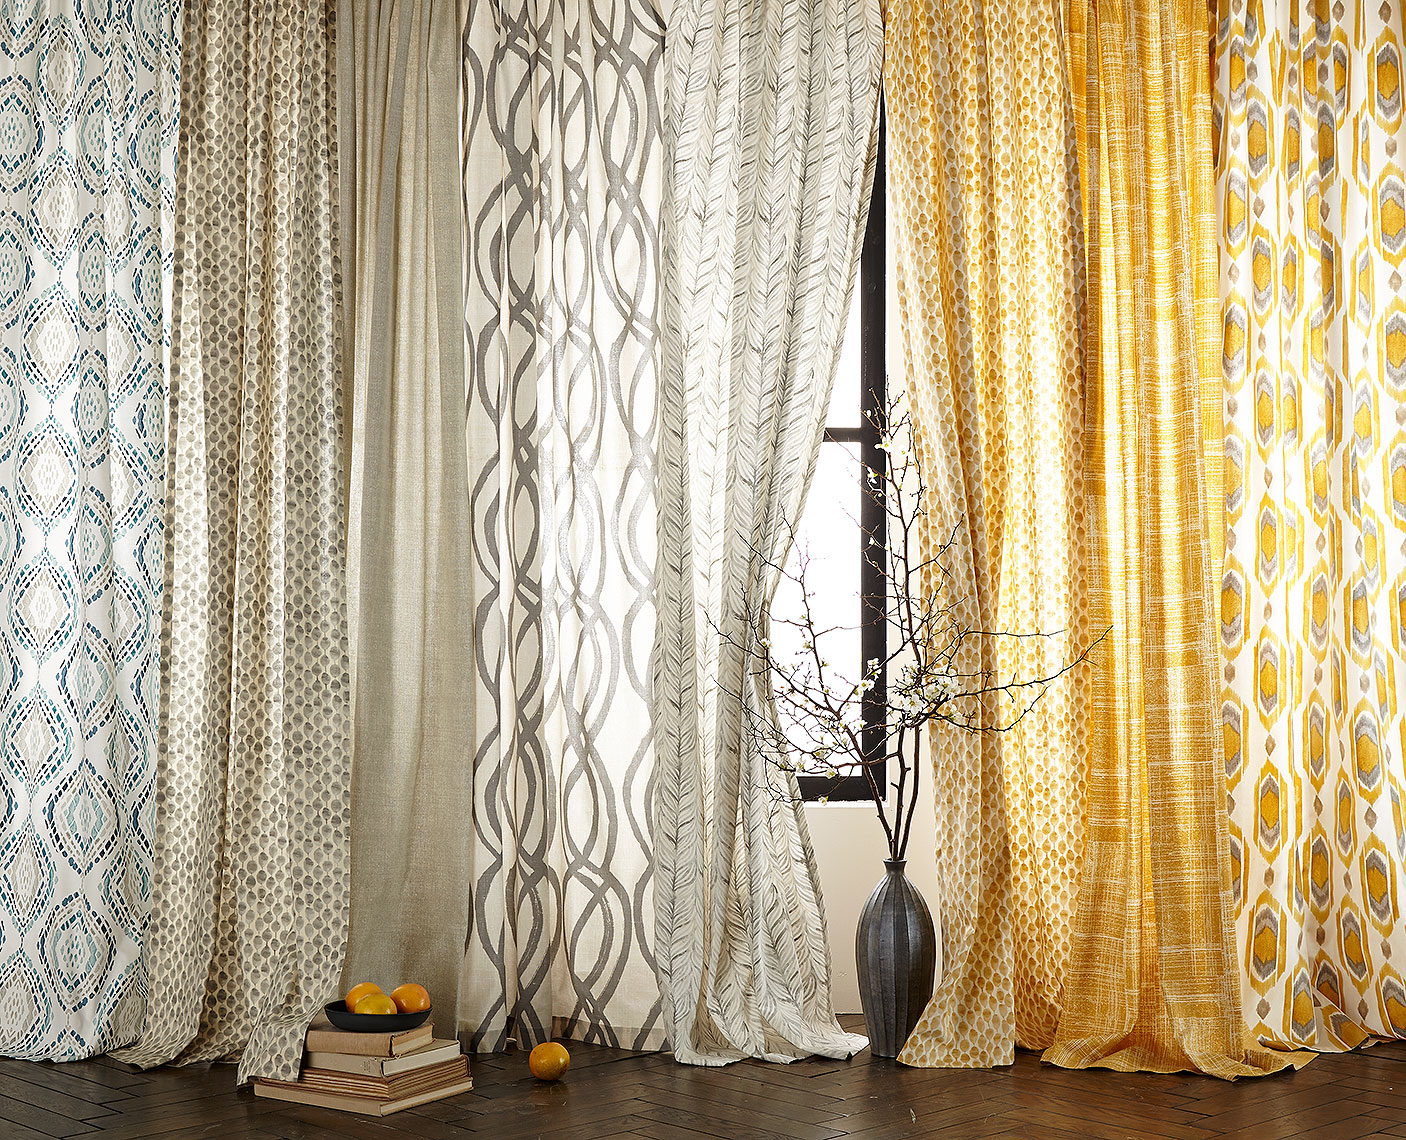 10_ecom-feature-Curtains-Boa-hp-sp16-307_YHK1